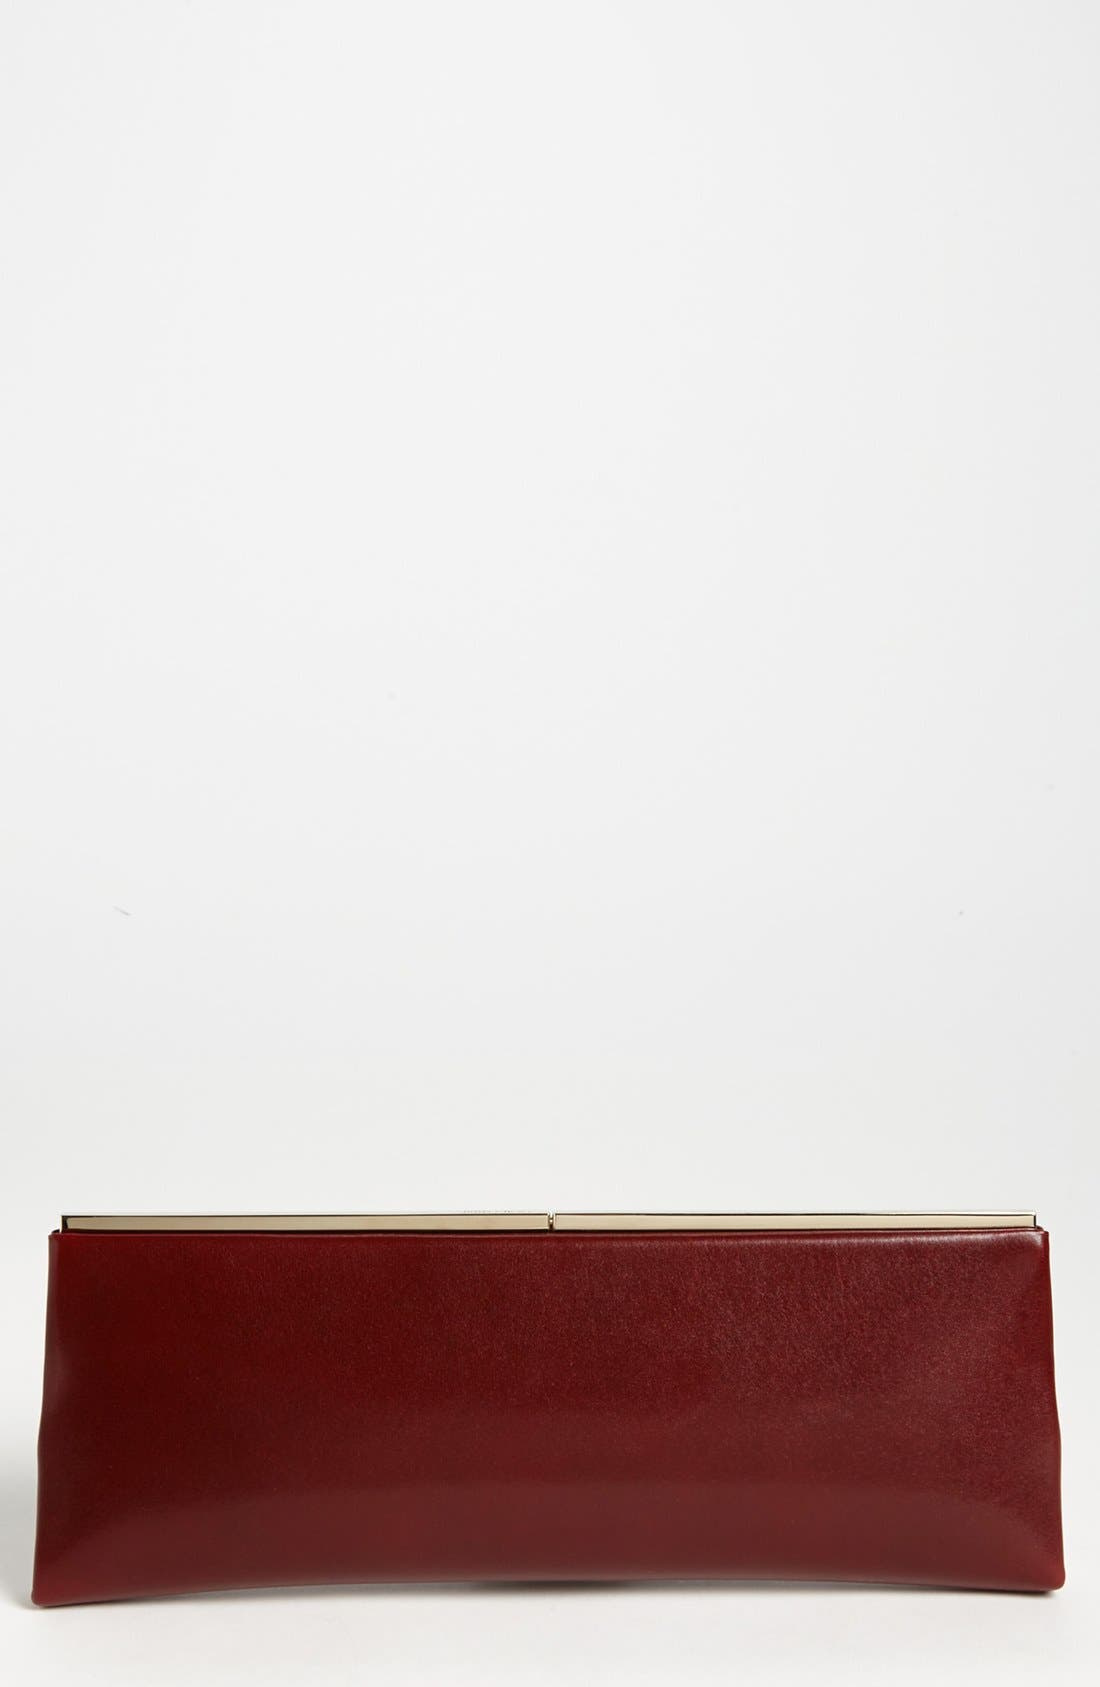 Alternate Image 1 Selected - Jimmy Choo 'Ciggy' Leather Clutch